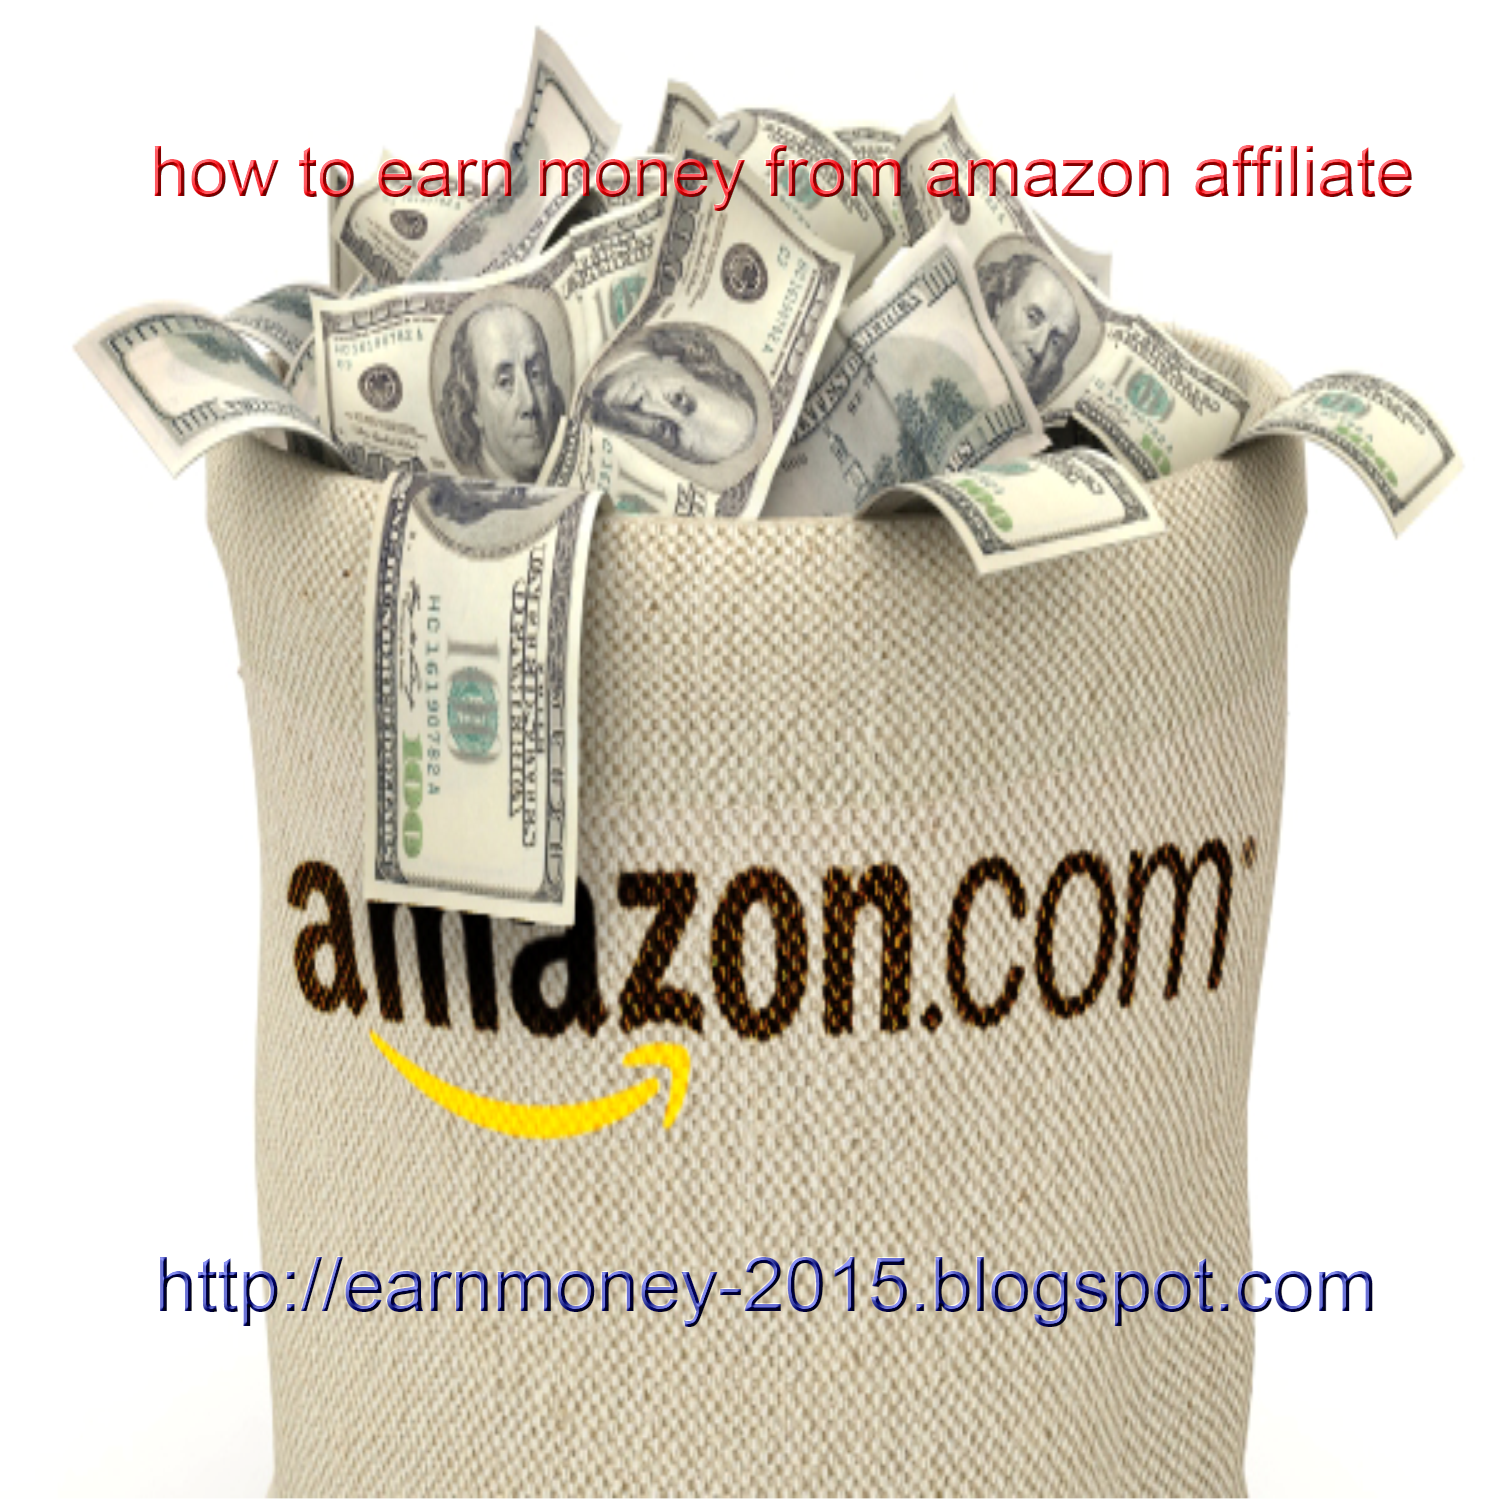 How To Earn Money From Amazon Affiliate